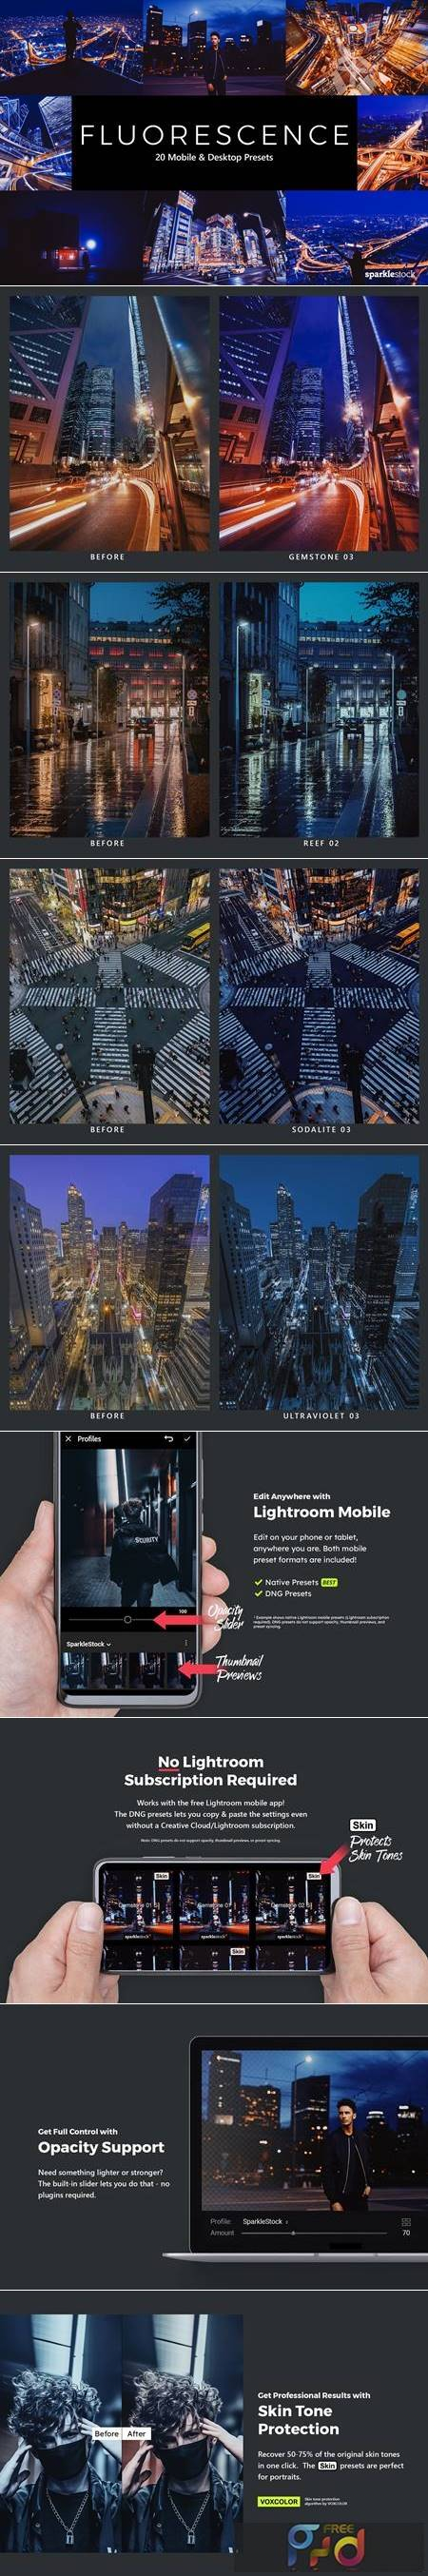 20 Fluorescence Lightroom Presets & LUTs 5471841 1